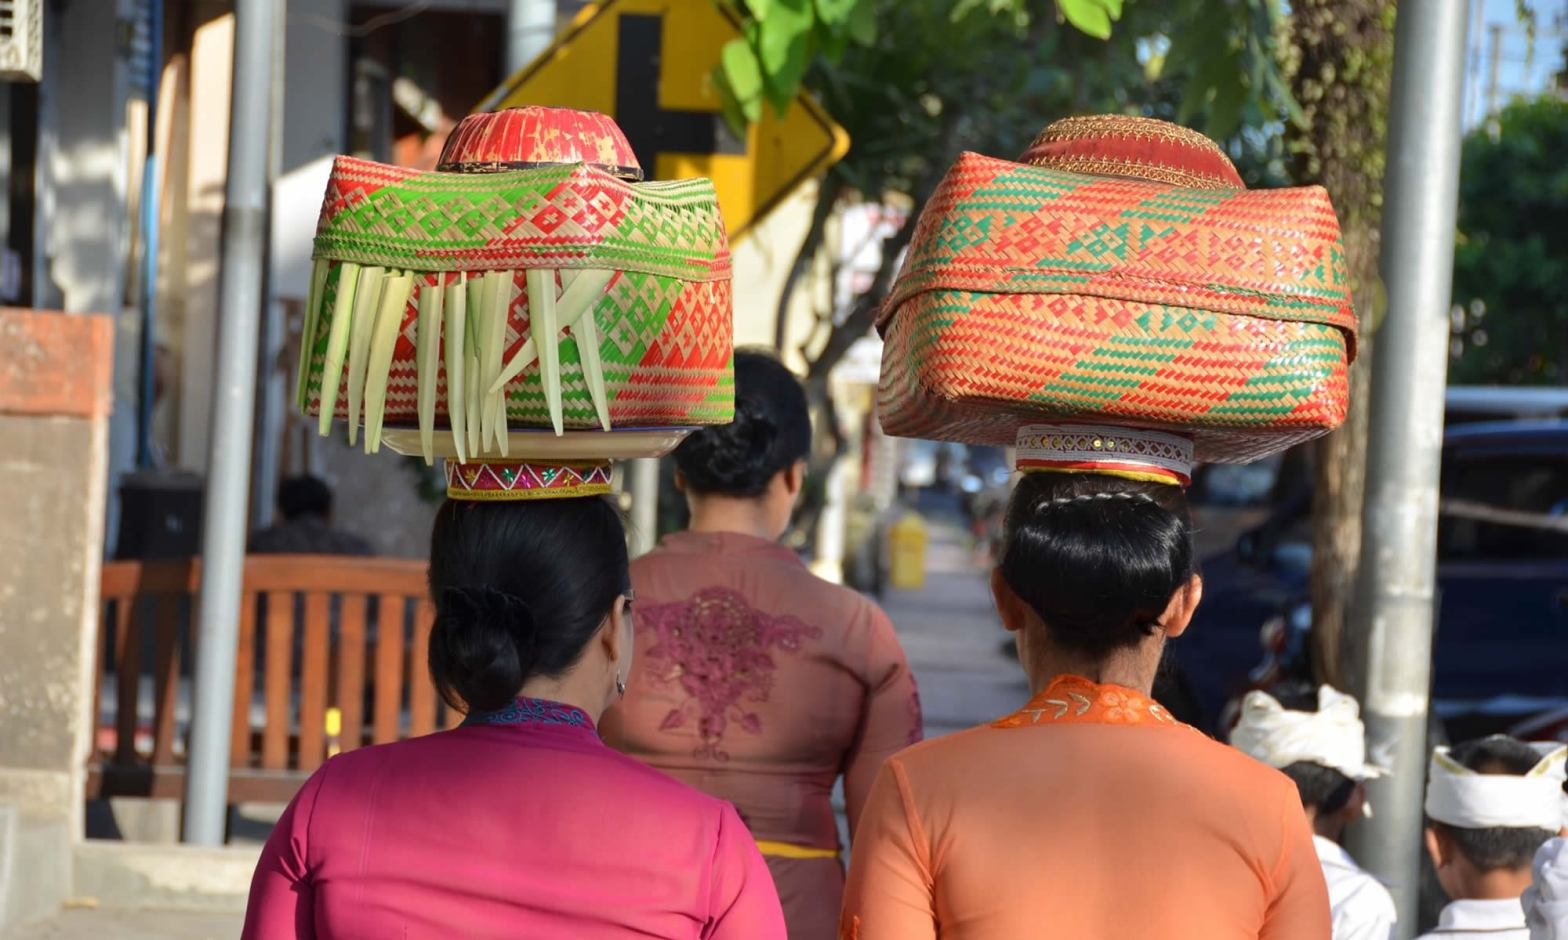 Women balance spiritual offering baskets on their heads in Ubud, Bali.